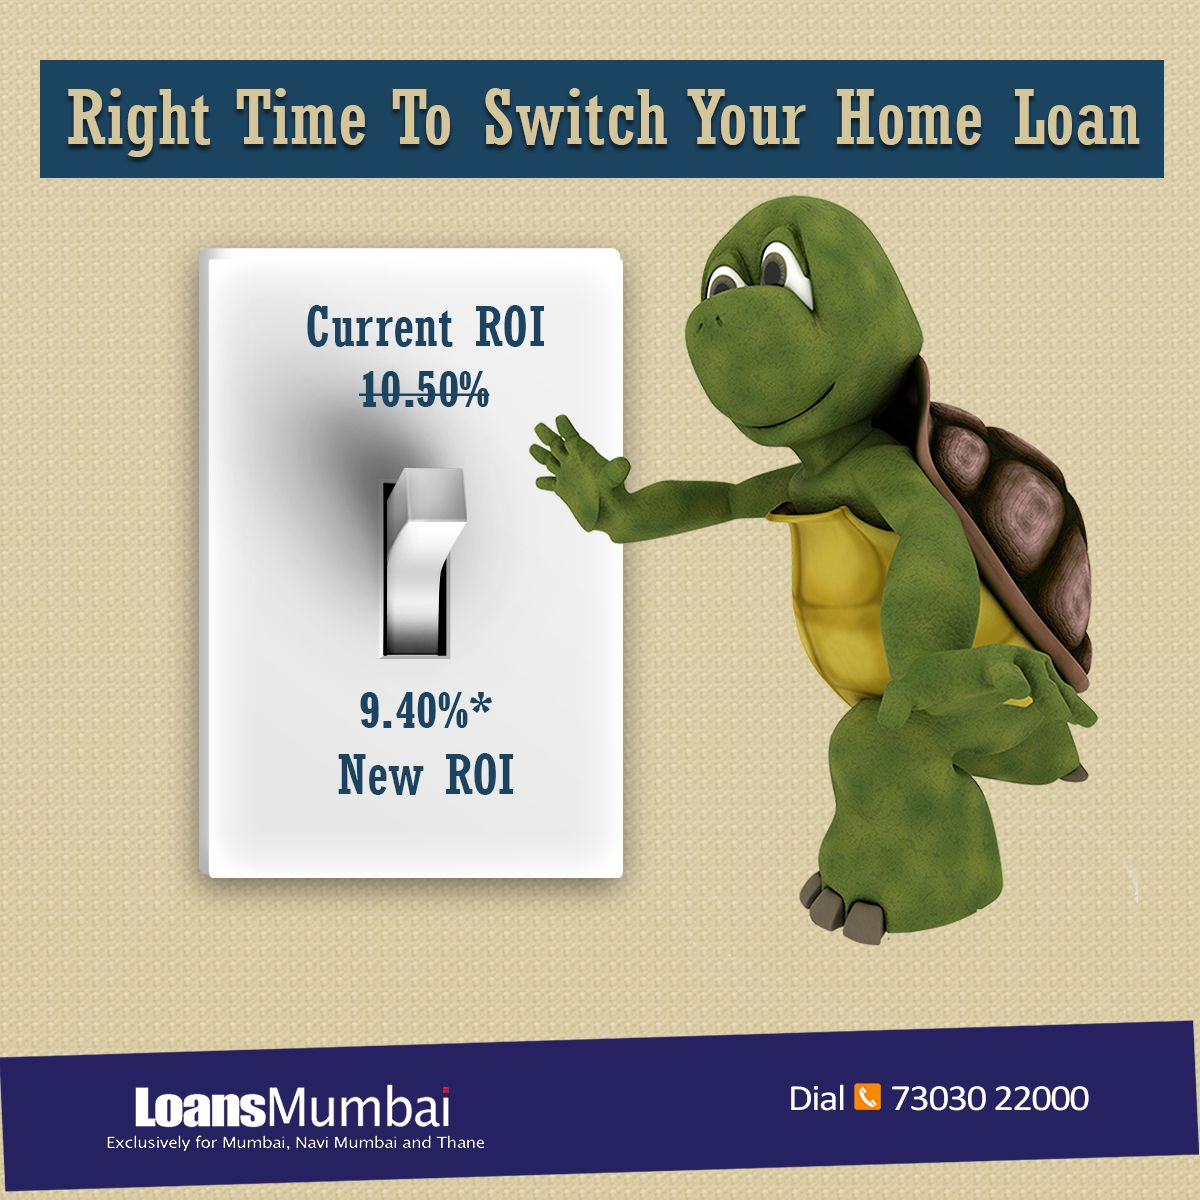 Right Time to Switch your Home Loan Home Loan starting